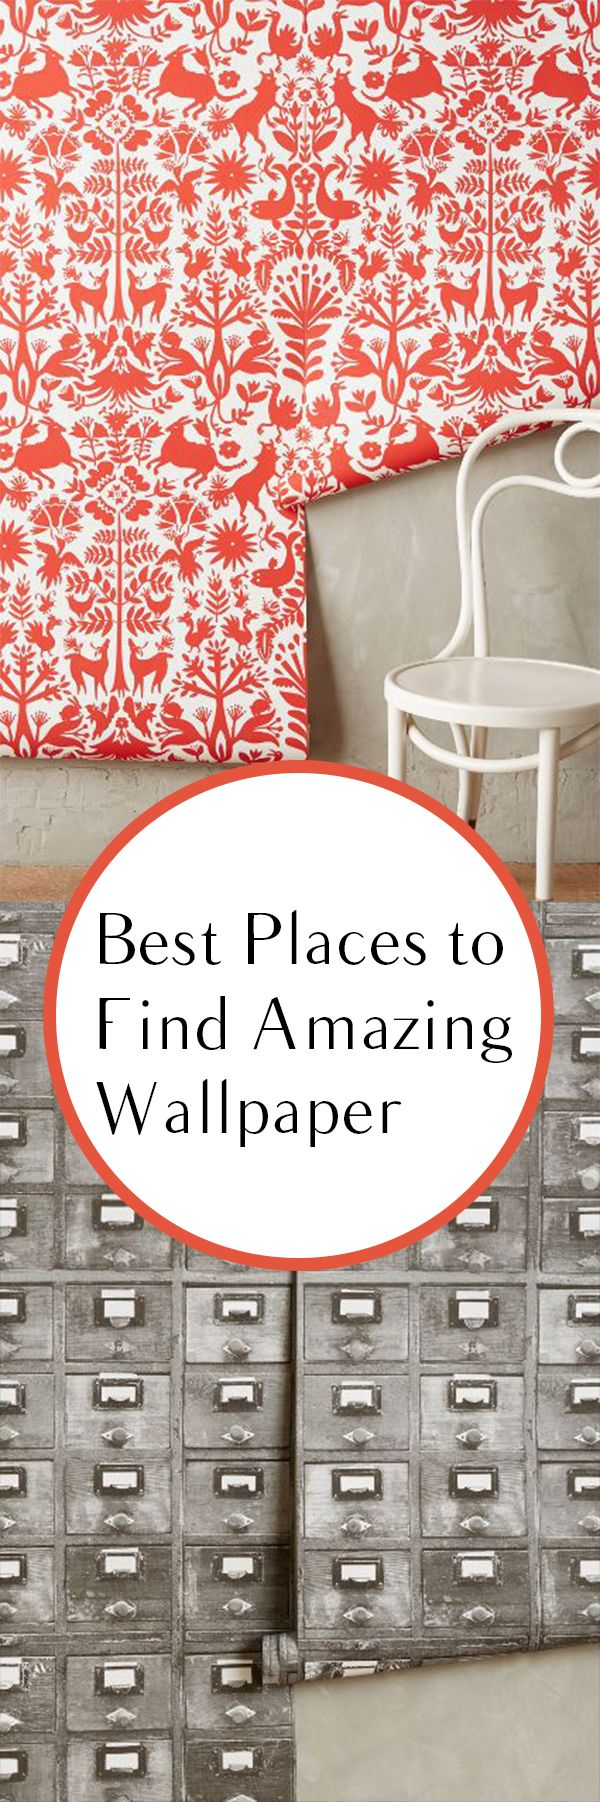 200 Best Wallpapers And Matching Fabrics Ideas Wallpaper Matching Fabrics Vintage Wallpaper